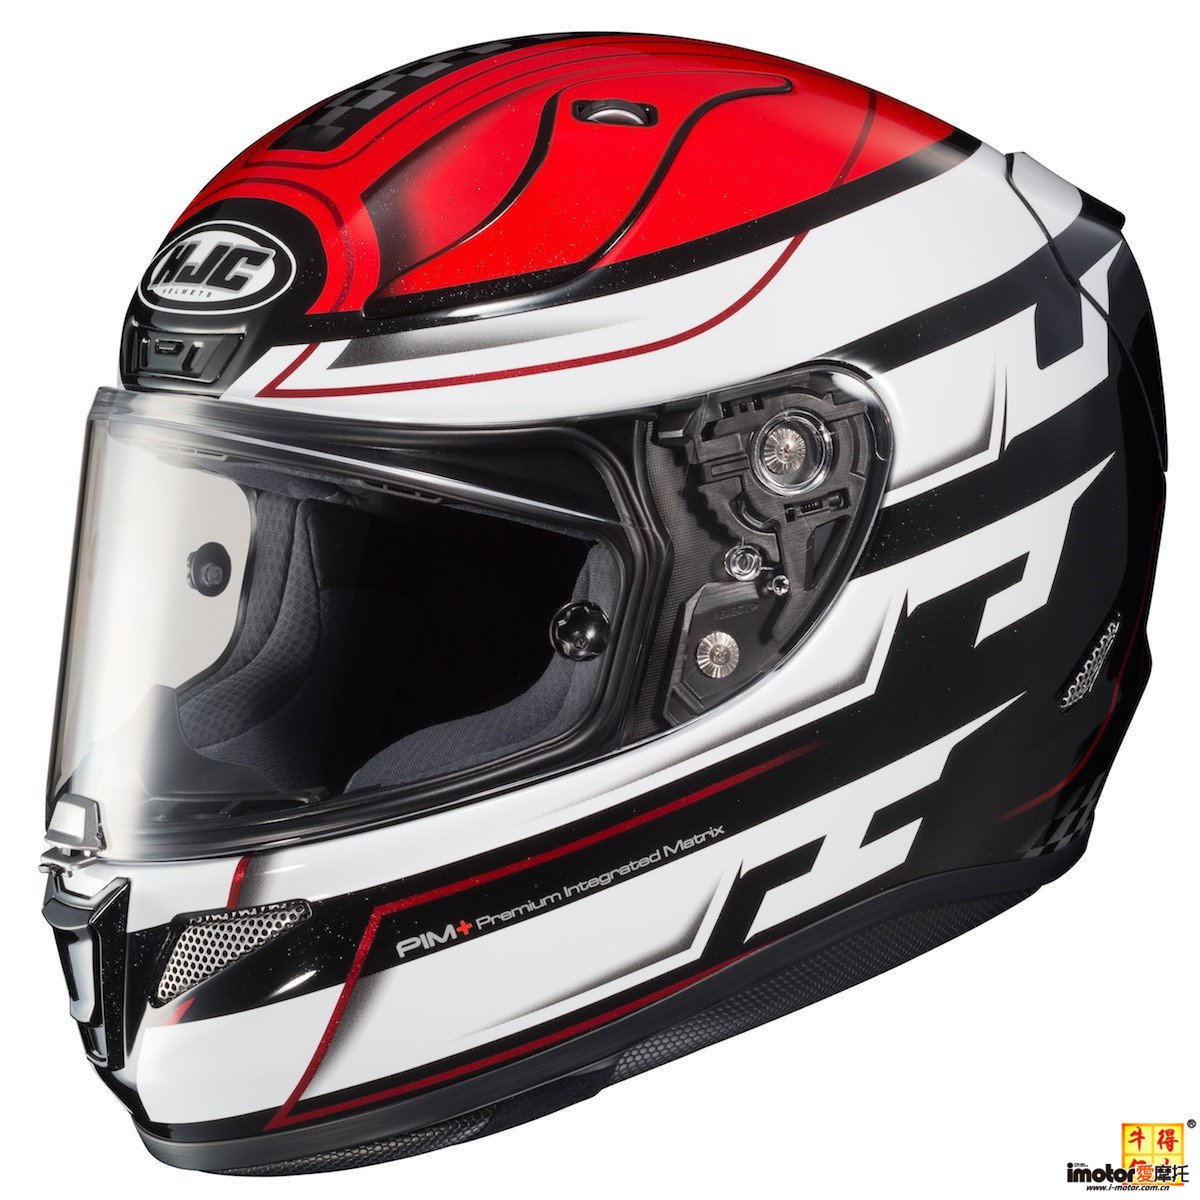 HJC-RPHA-11-Pro-motorcycle-helmet-review-7.jpg